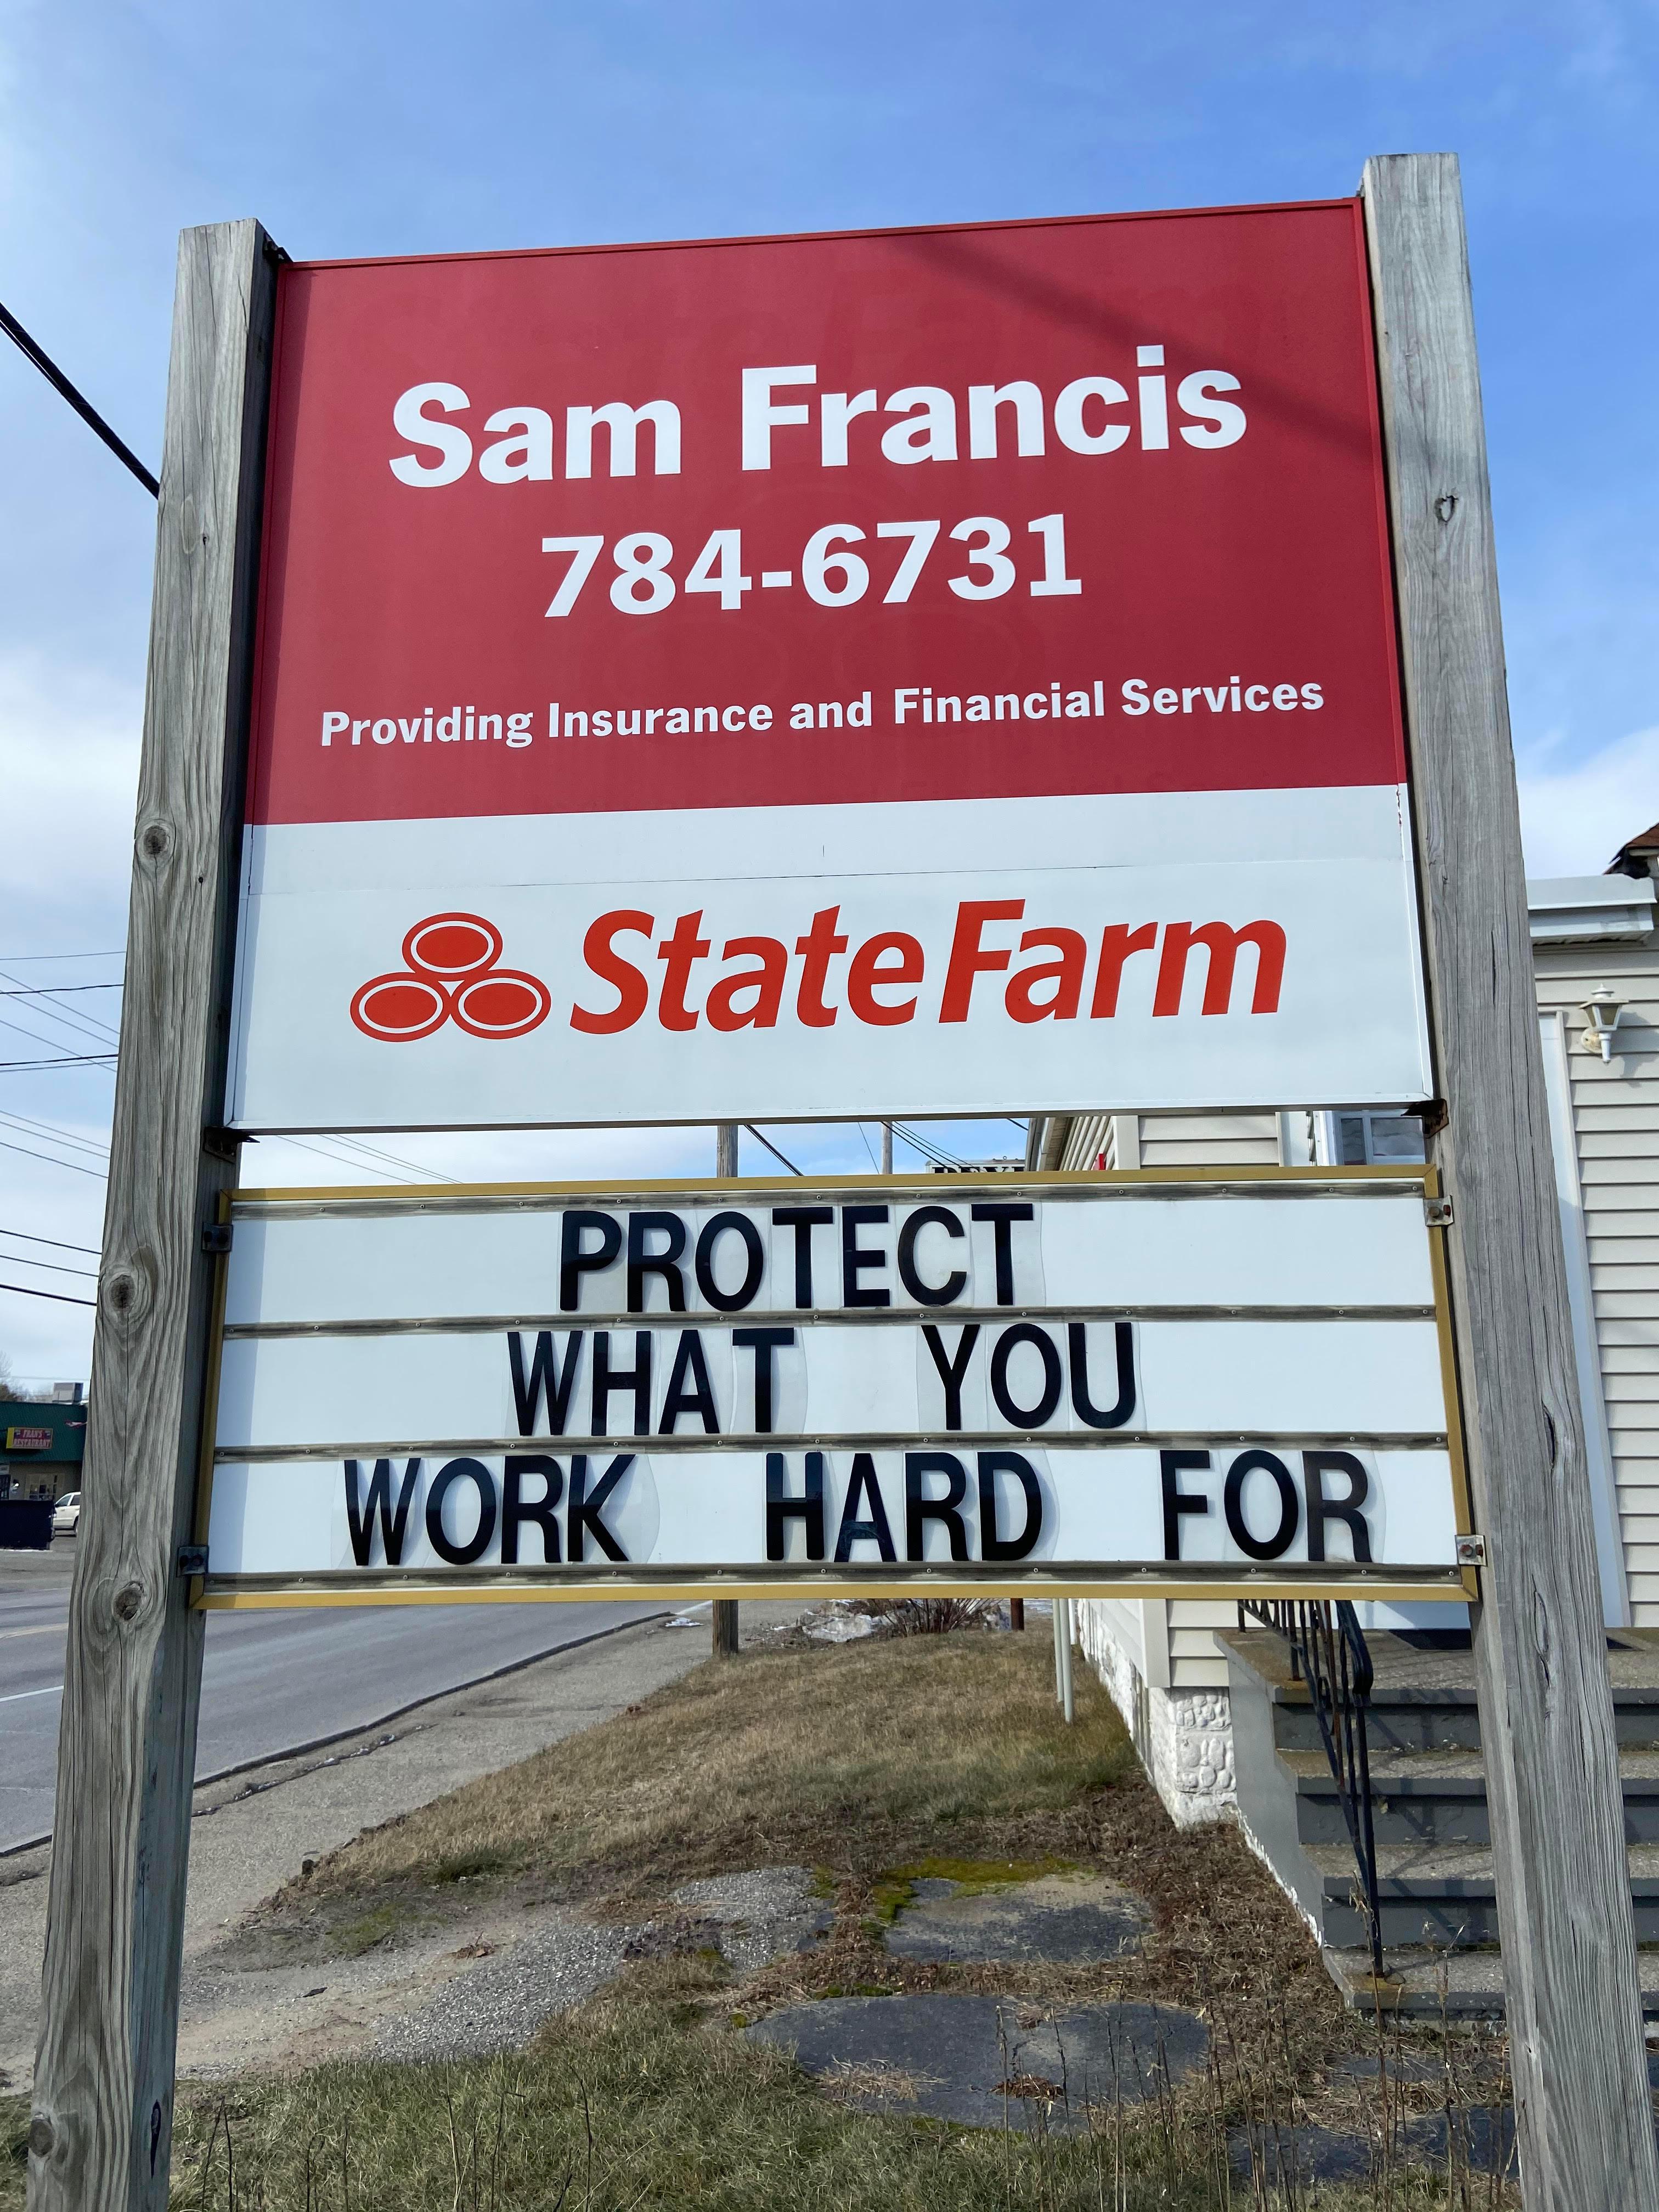 Sam Francis - State Farm Insurance Agent